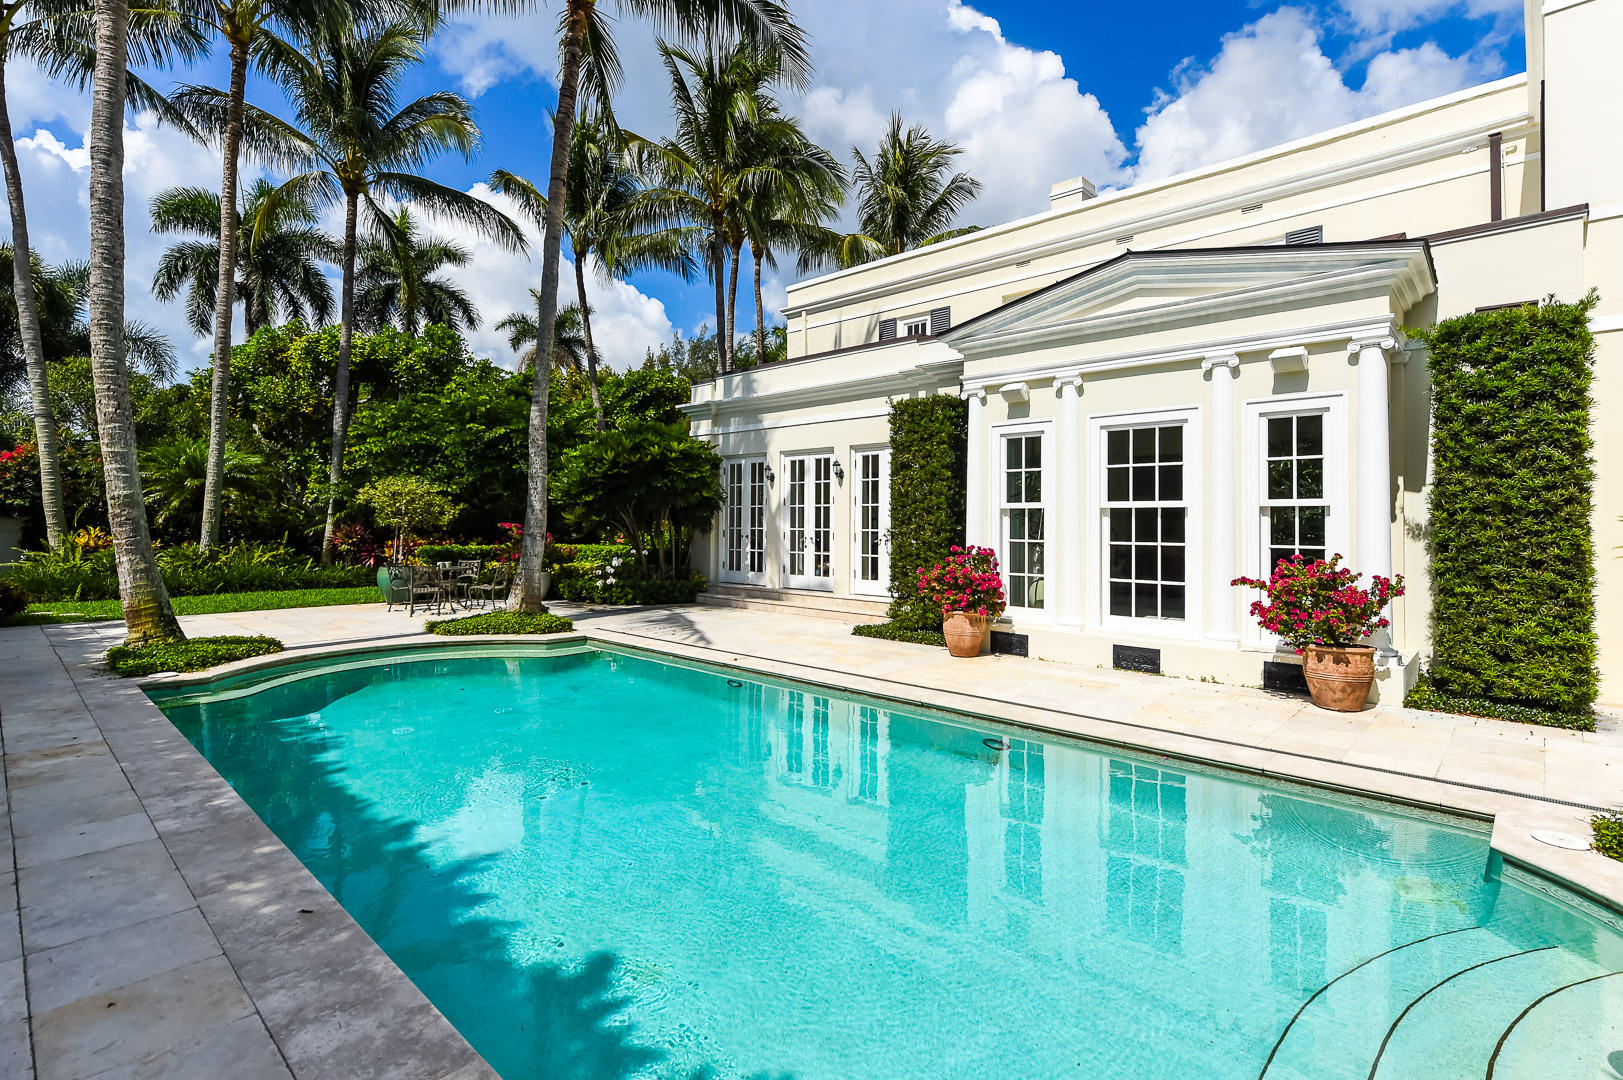 TROPIC ISLE PALM BEACH REAL ESTATE